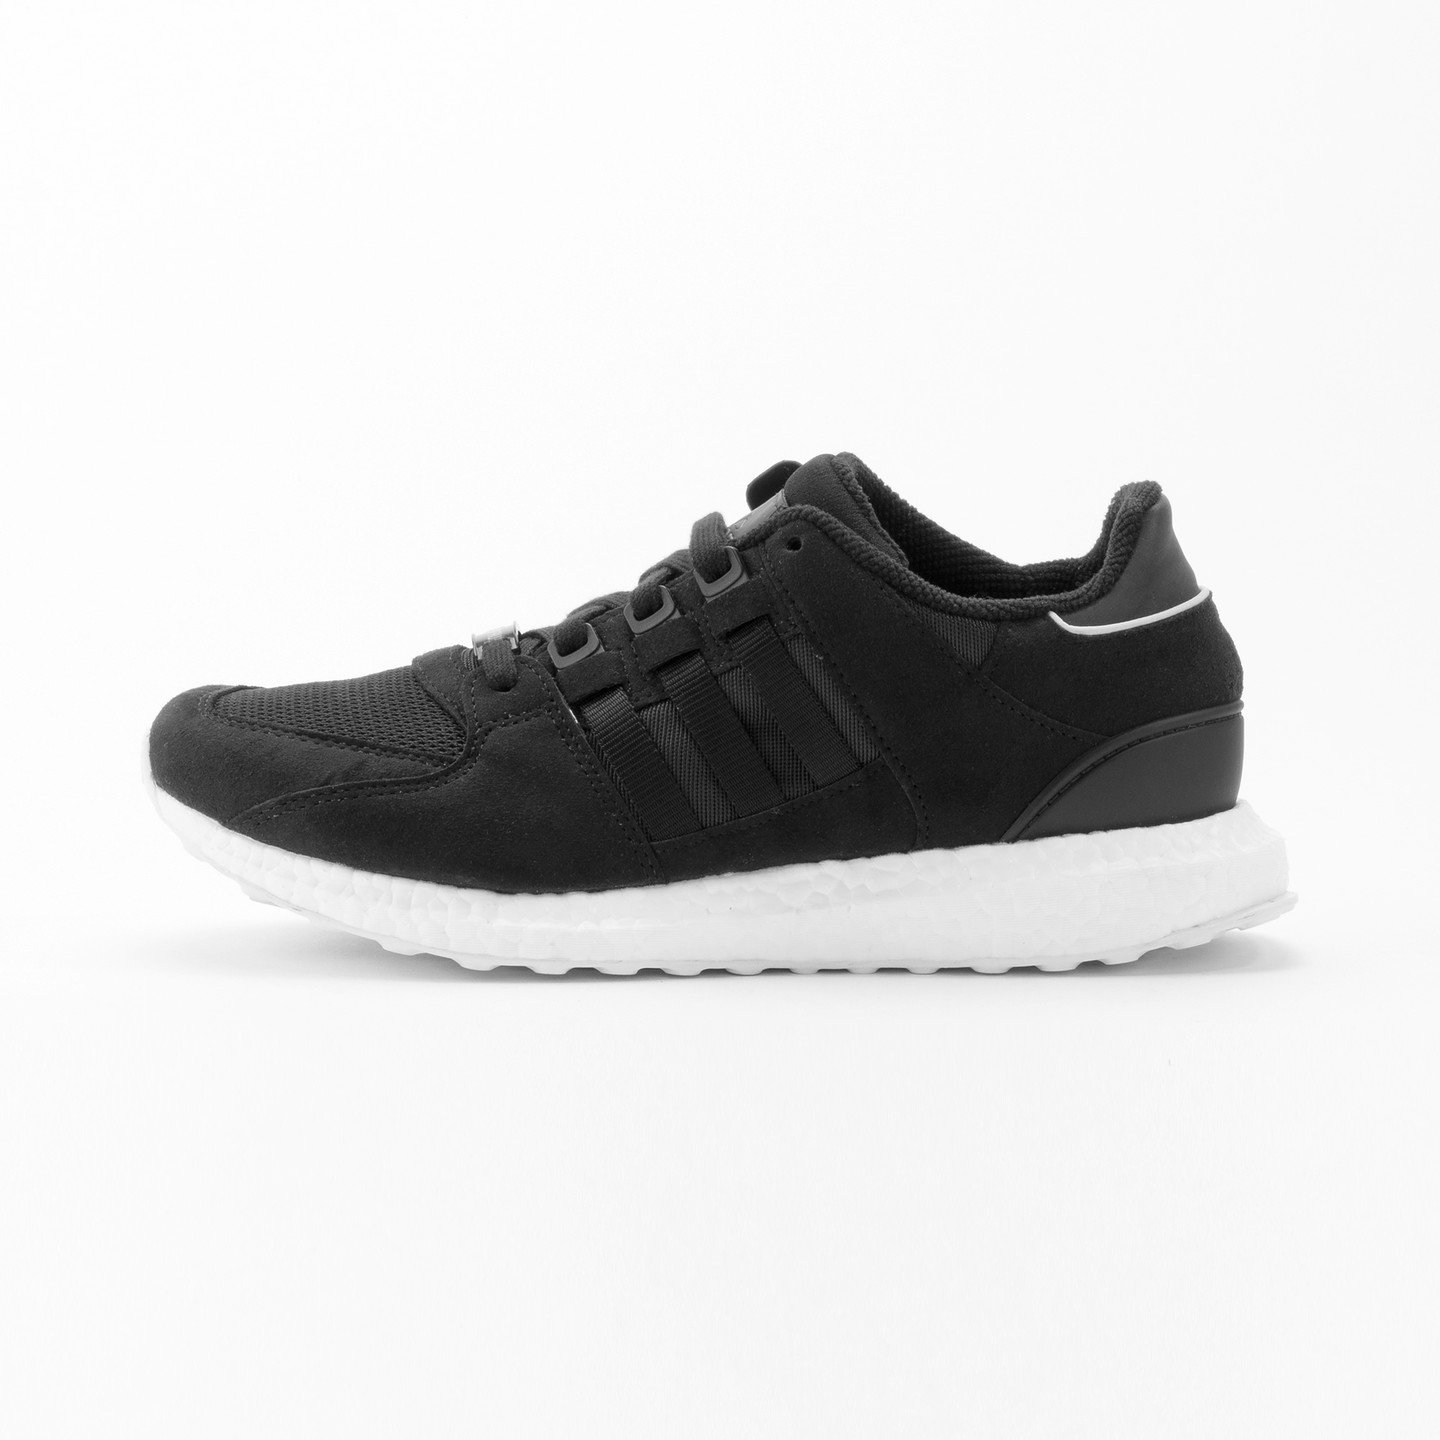 Adidas Equipment Support 93/16 Core Black / Running White BY9148-44